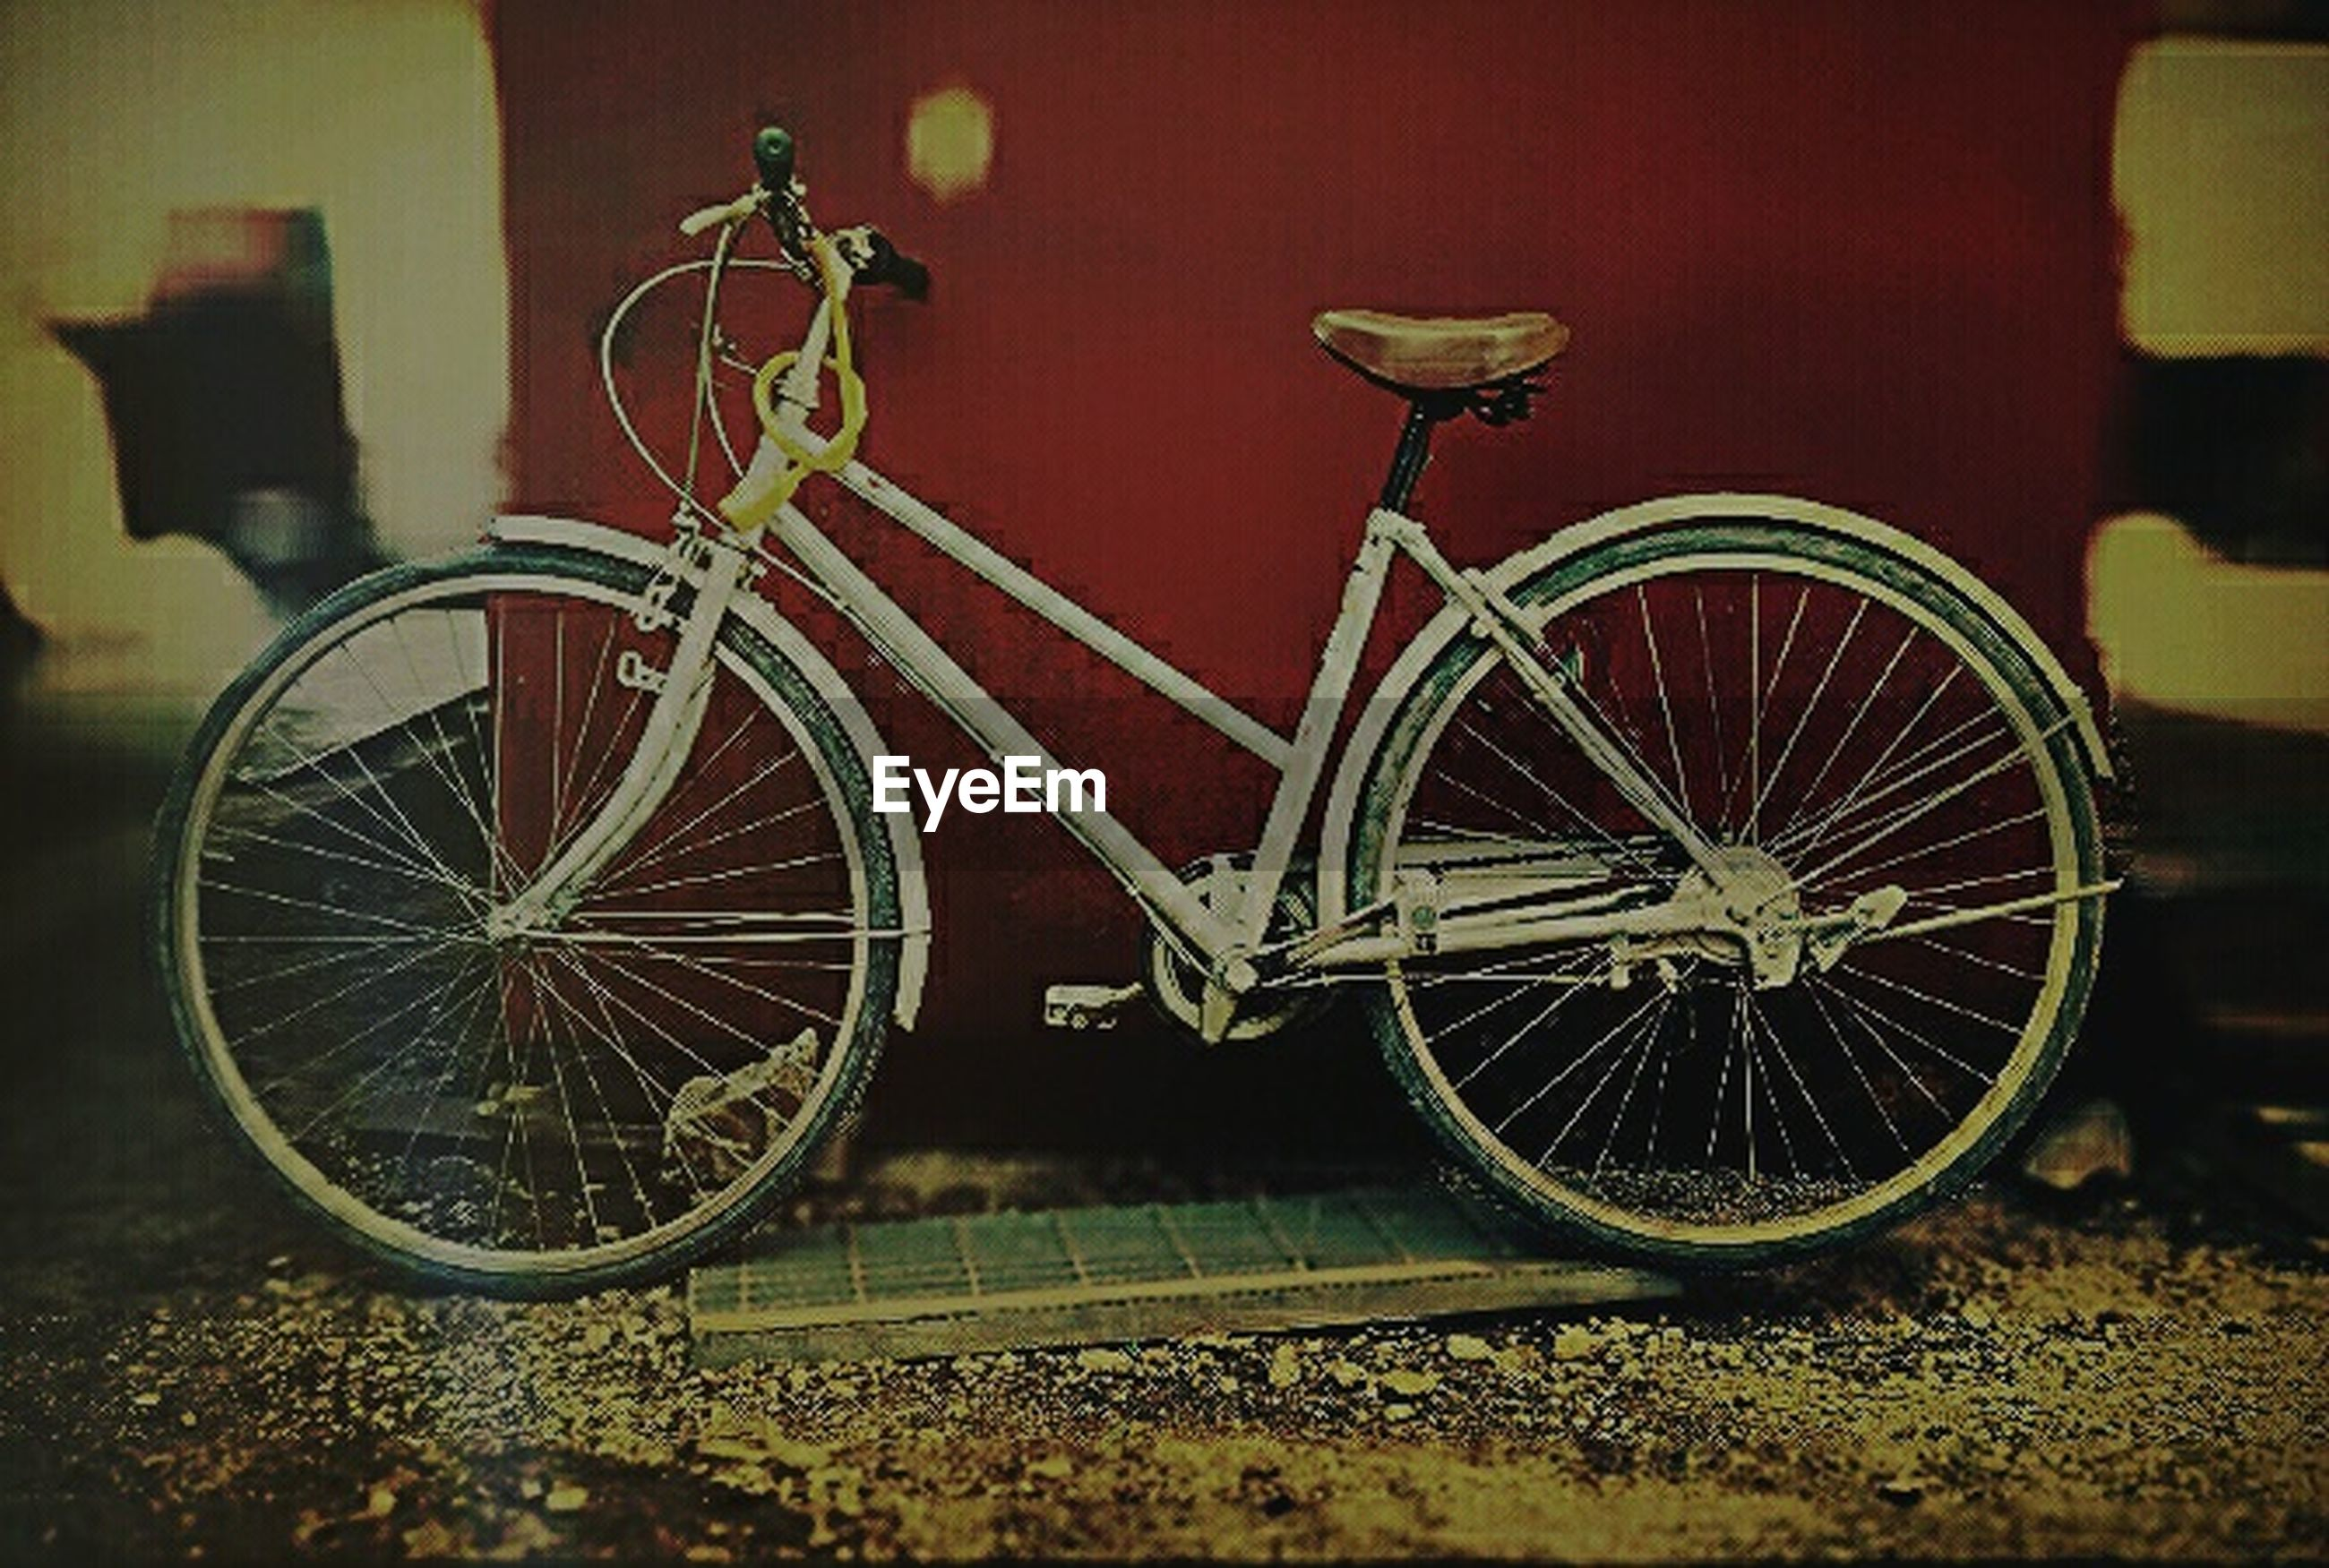 bicycle, transportation, land vehicle, mode of transport, stationary, wheel, parked, parking, street, no people, outdoors, day, wall - building feature, cycle, tire, abandoned, leaning, sunlight, travel, absence